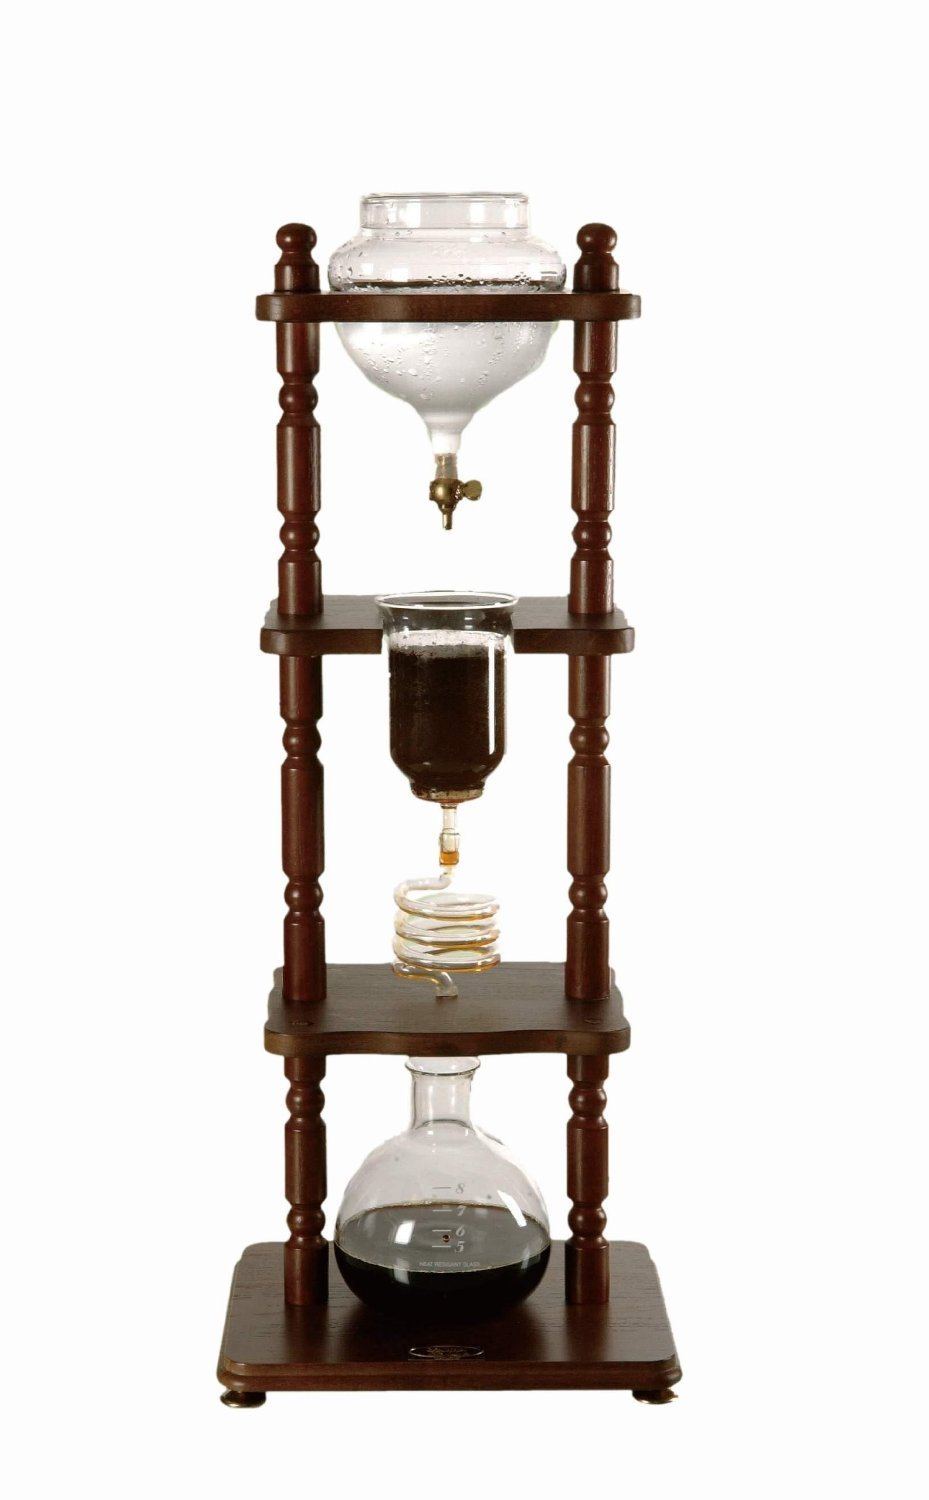 Japanese ice coffee is a special flavor, made in a precise way, using specialized equipment. The{&amp;nbsp;}Yama Glass Cold Drip Coffee Maker from Amazon brings home an acid-free iced coffee with a smooth flavor. This coffee maker is not only a great way to make coffee but it also{&amp;nbsp;}is a striking conversation piece.{&amp;nbsp;} (Image: Amazon.com)<p></p>